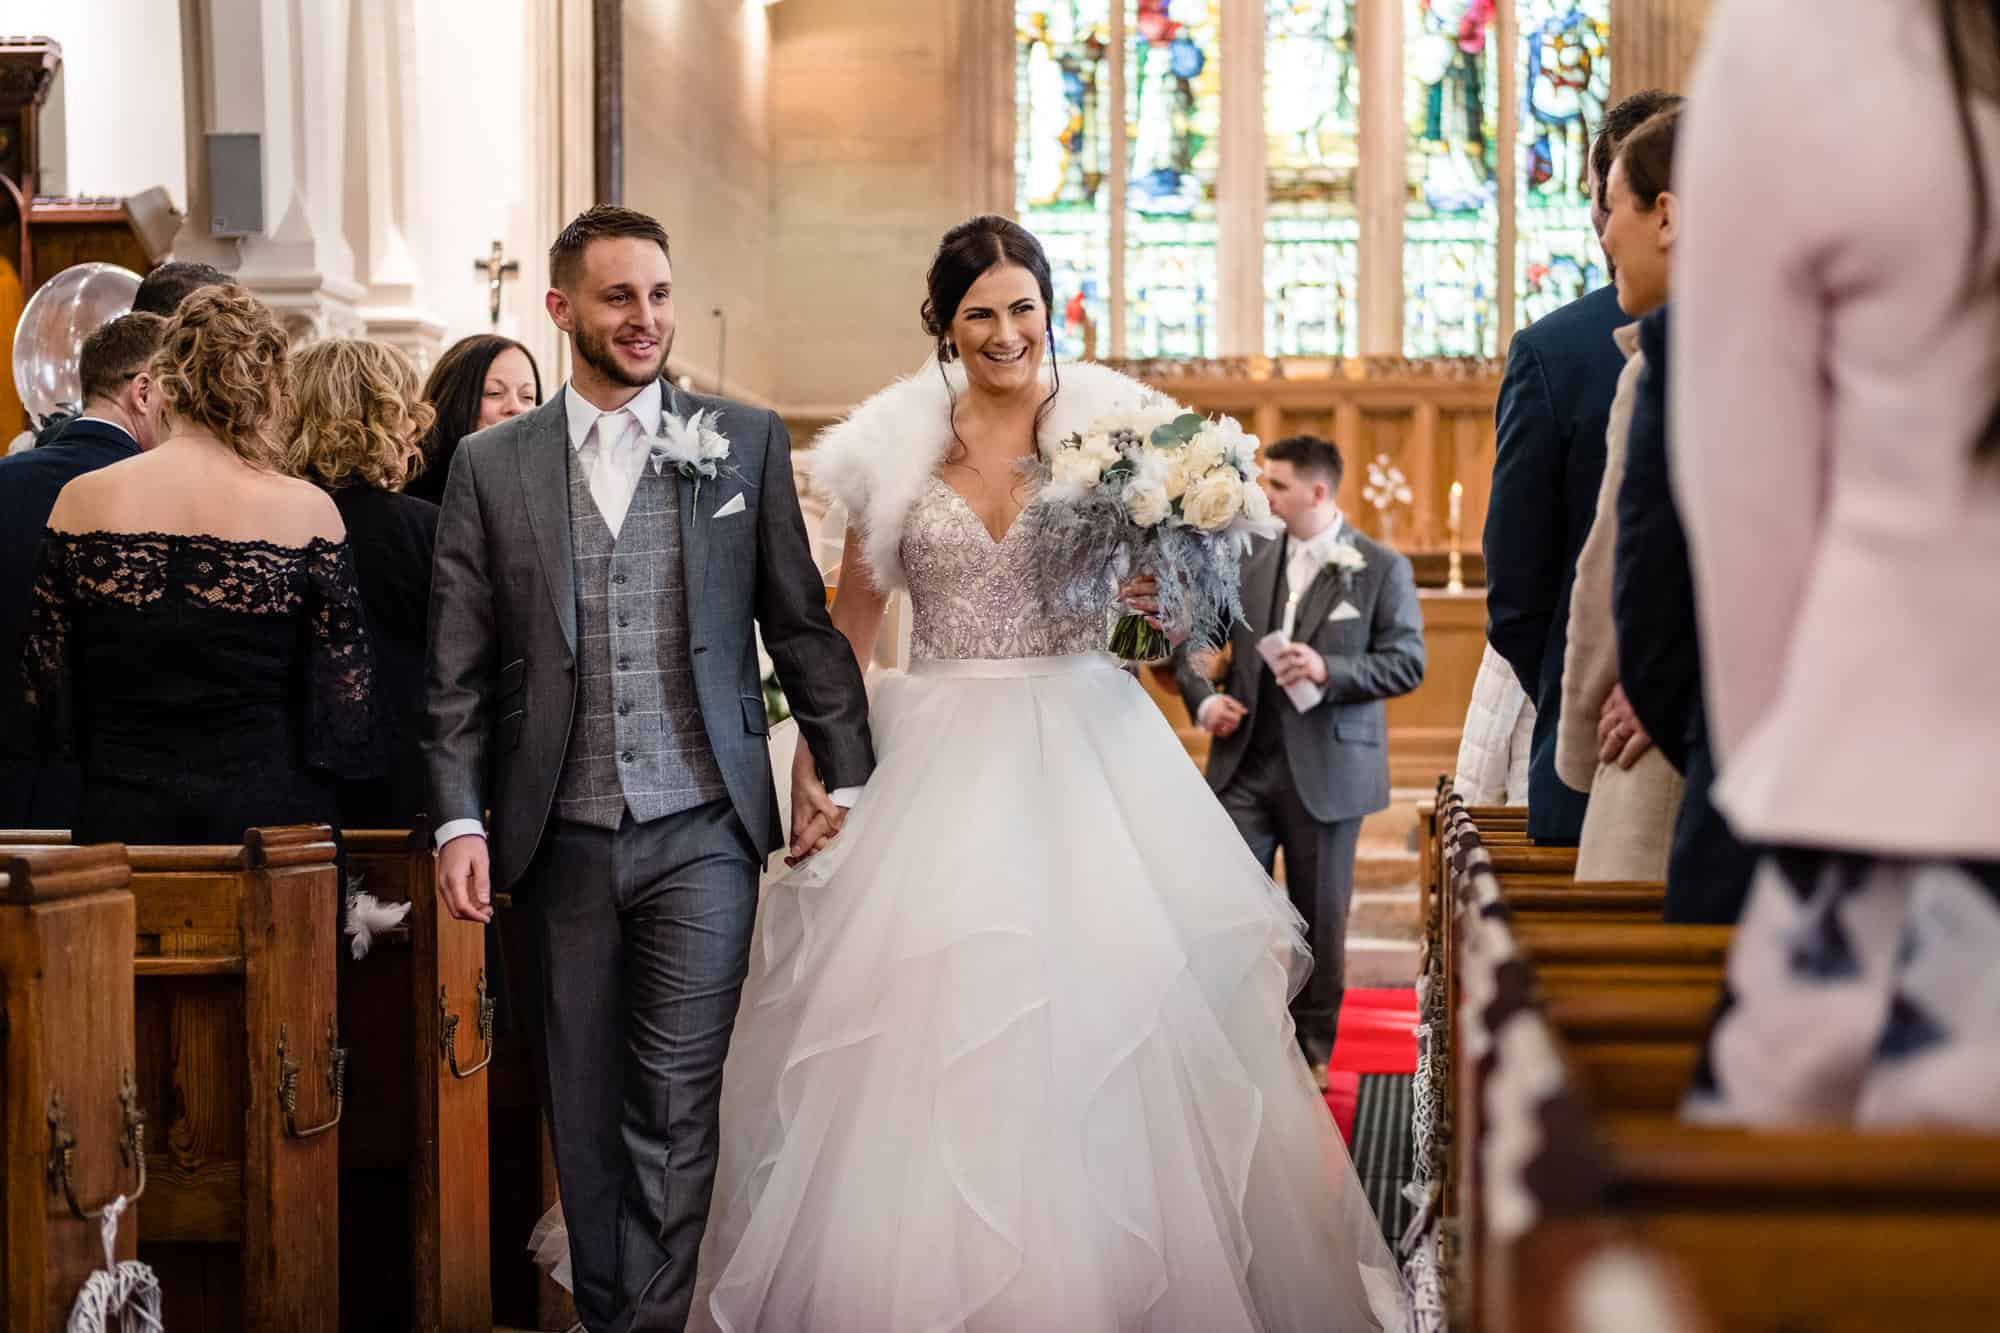 couple just married at church before the saddleworth hotel wedding reception